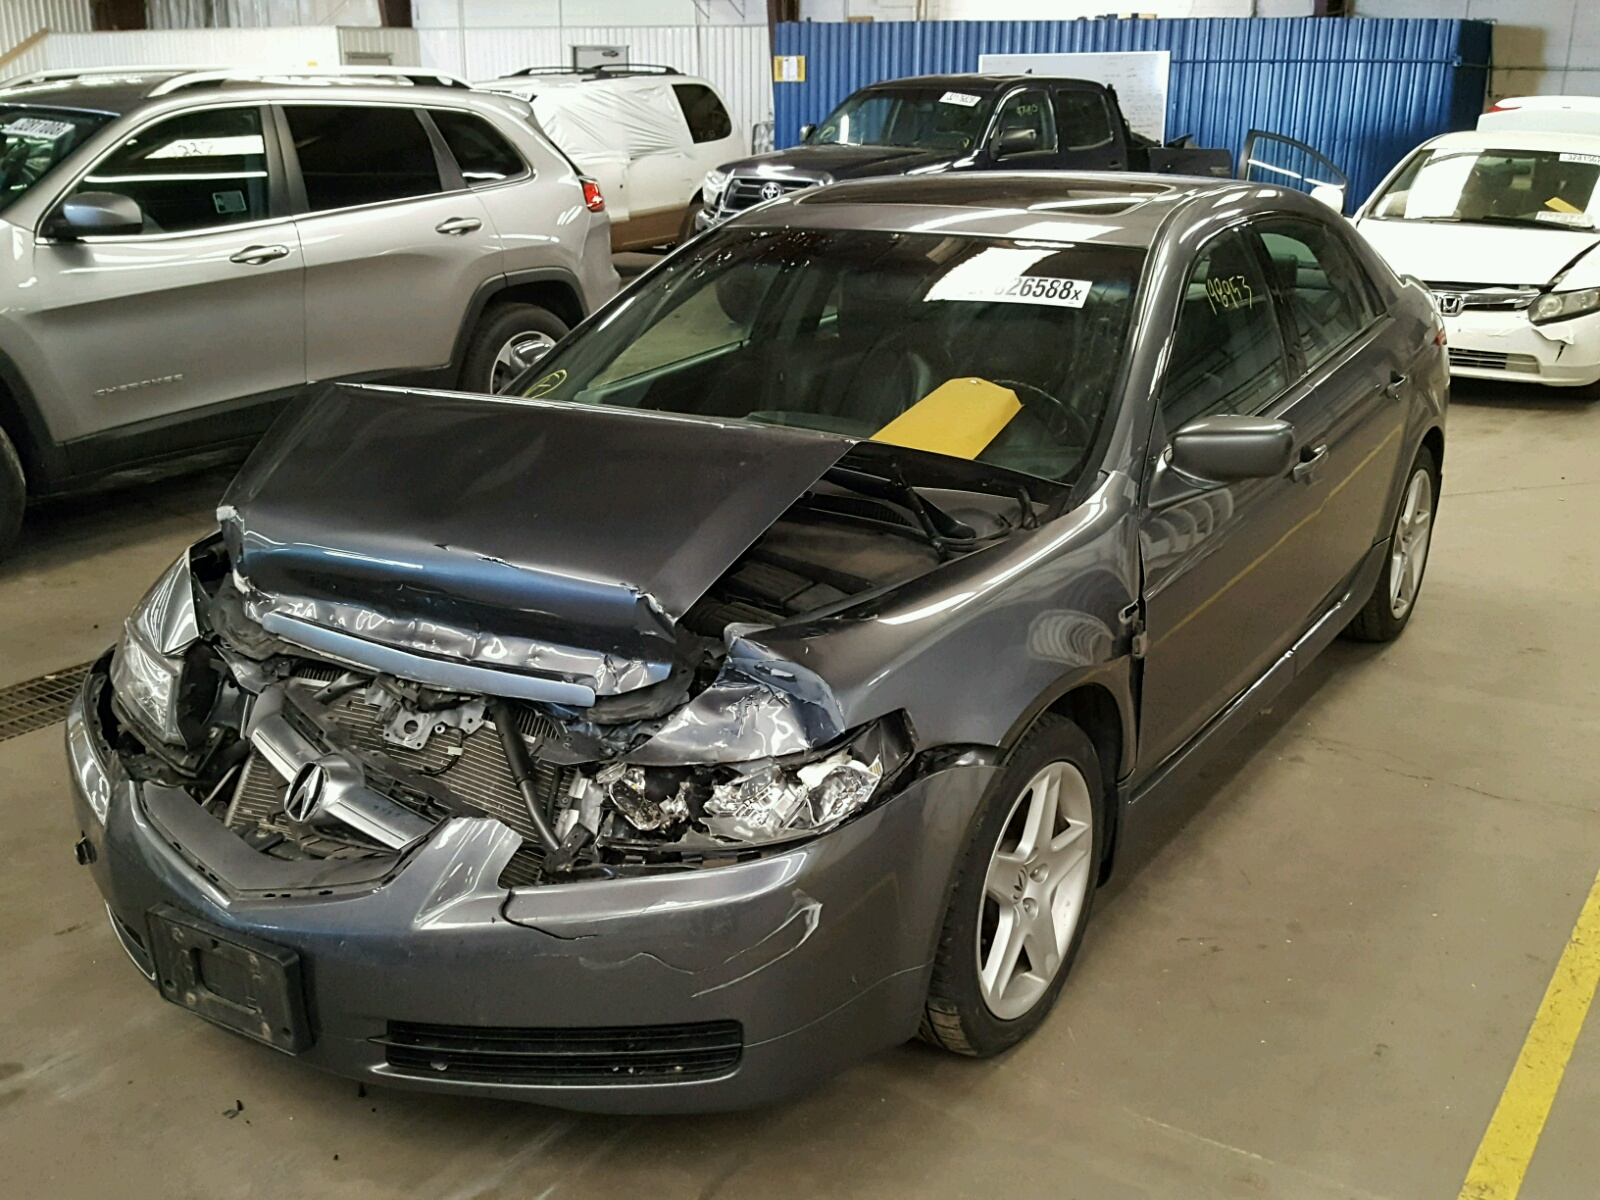 denver on tl salvage for left acura auctions copart view white auto carfinder in title sale online co en lot